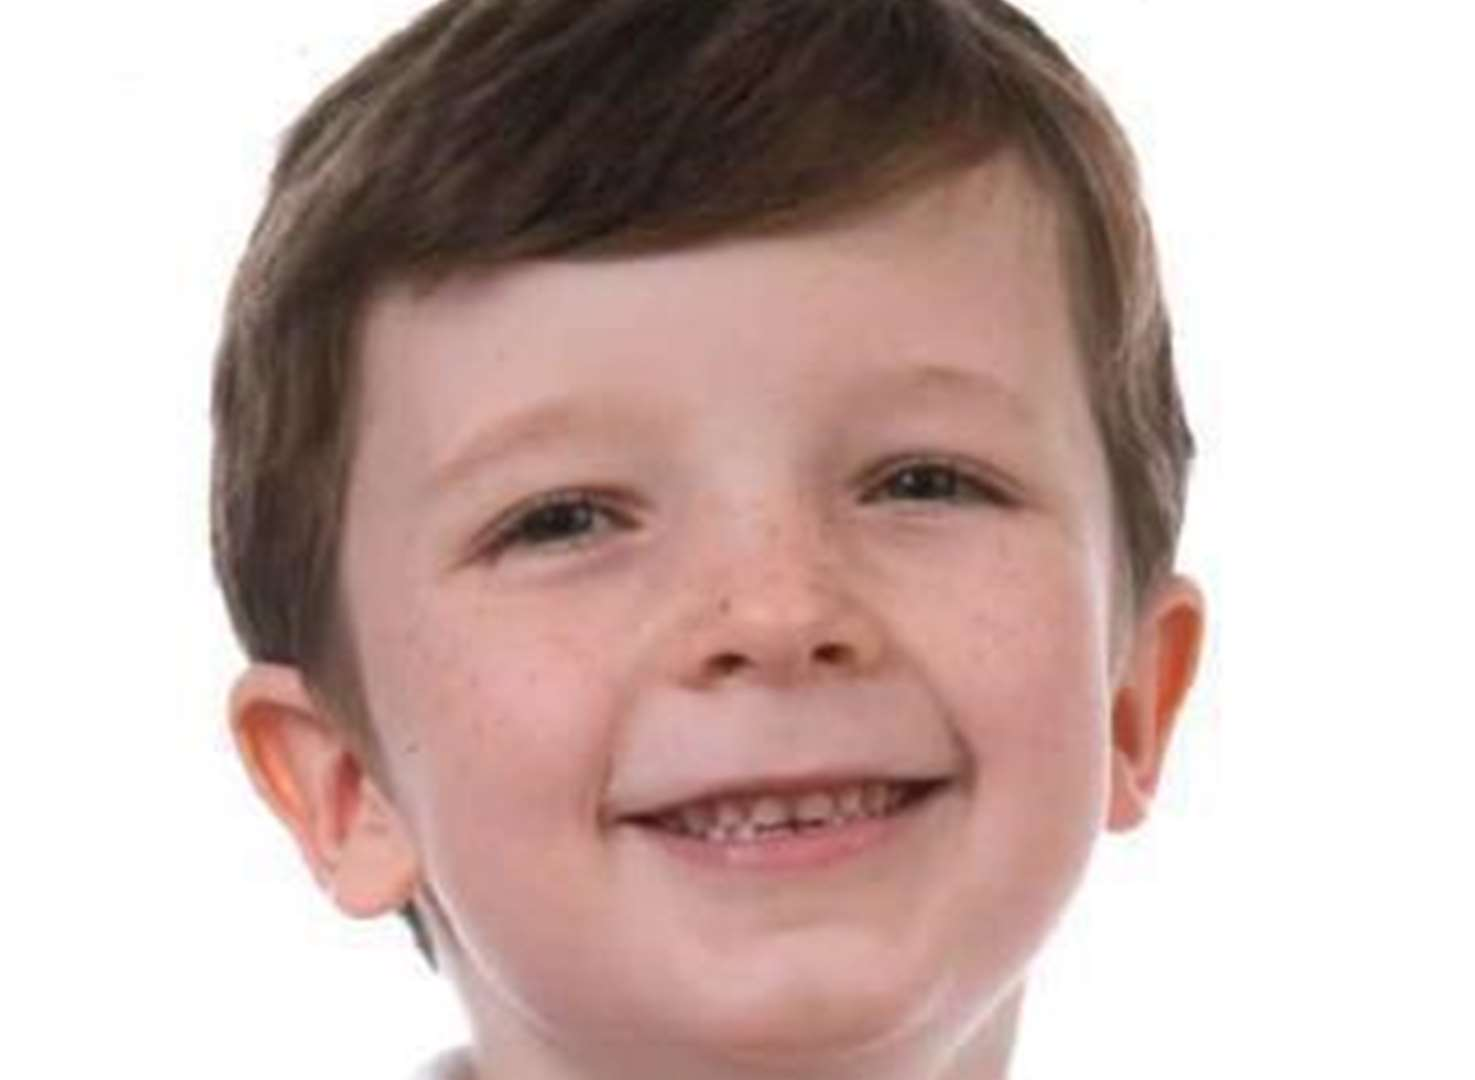 Tributes to boy, 7, after sudden death